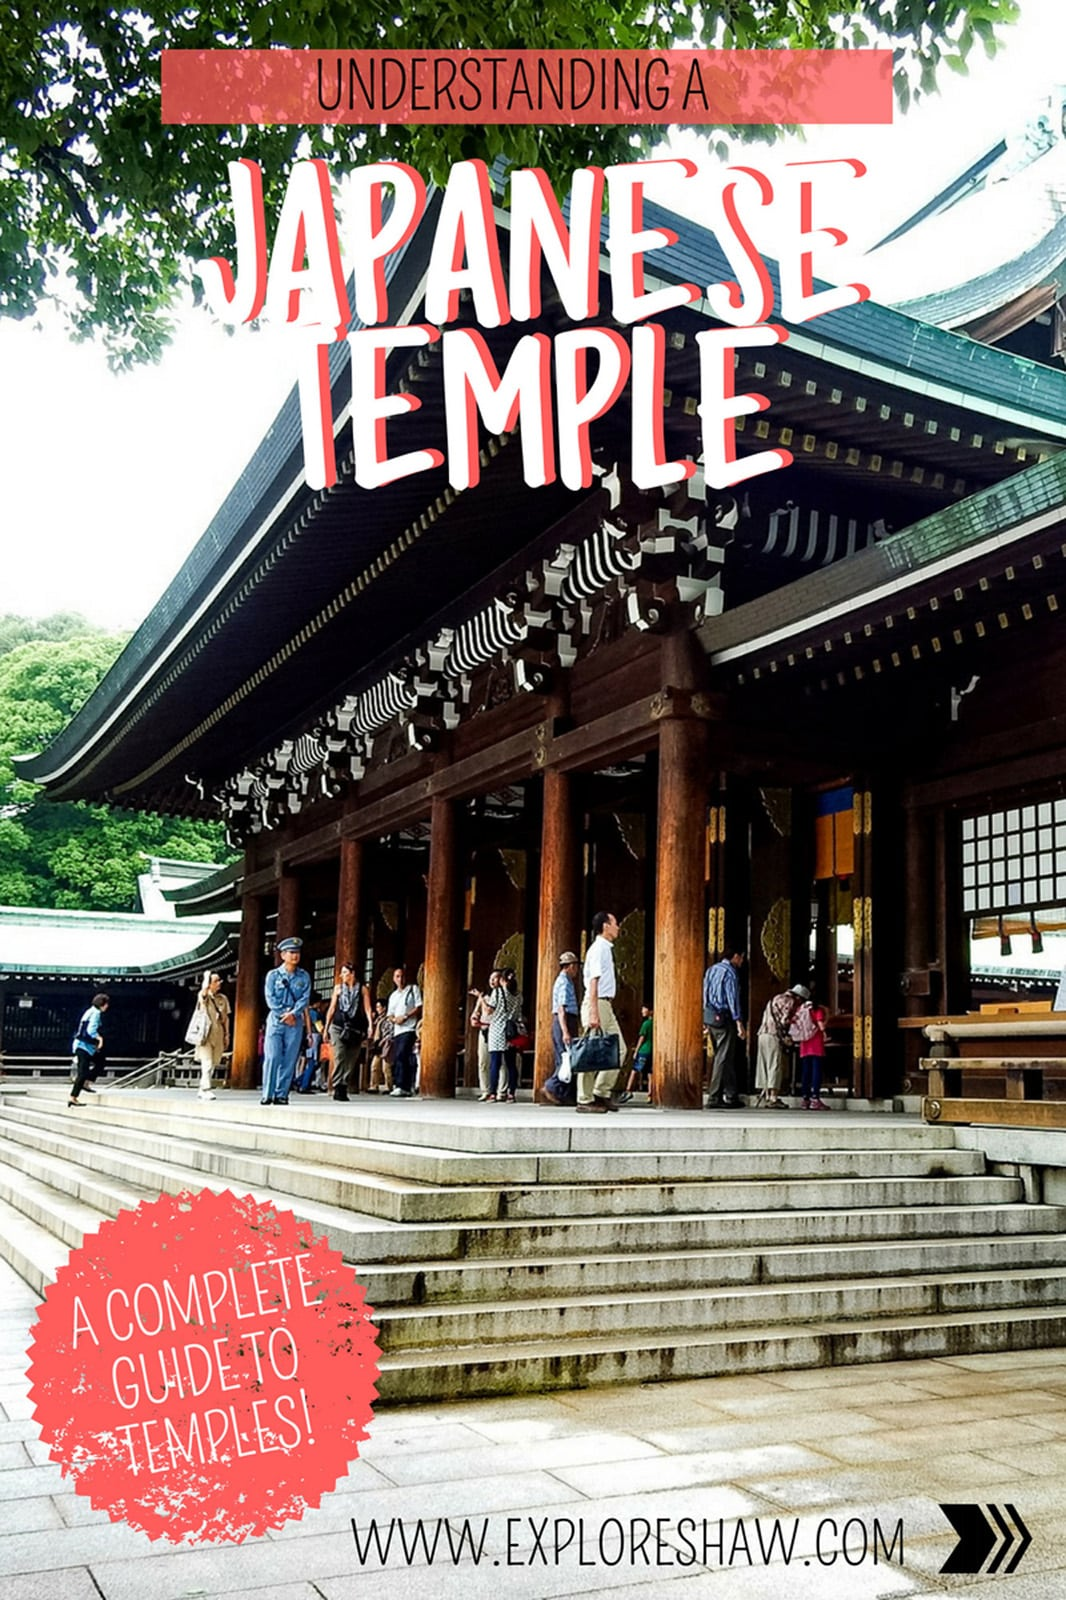 A visitors guide to understanding Japanese temples and the significance behind the different statues, buildings and features you might see at any temple.